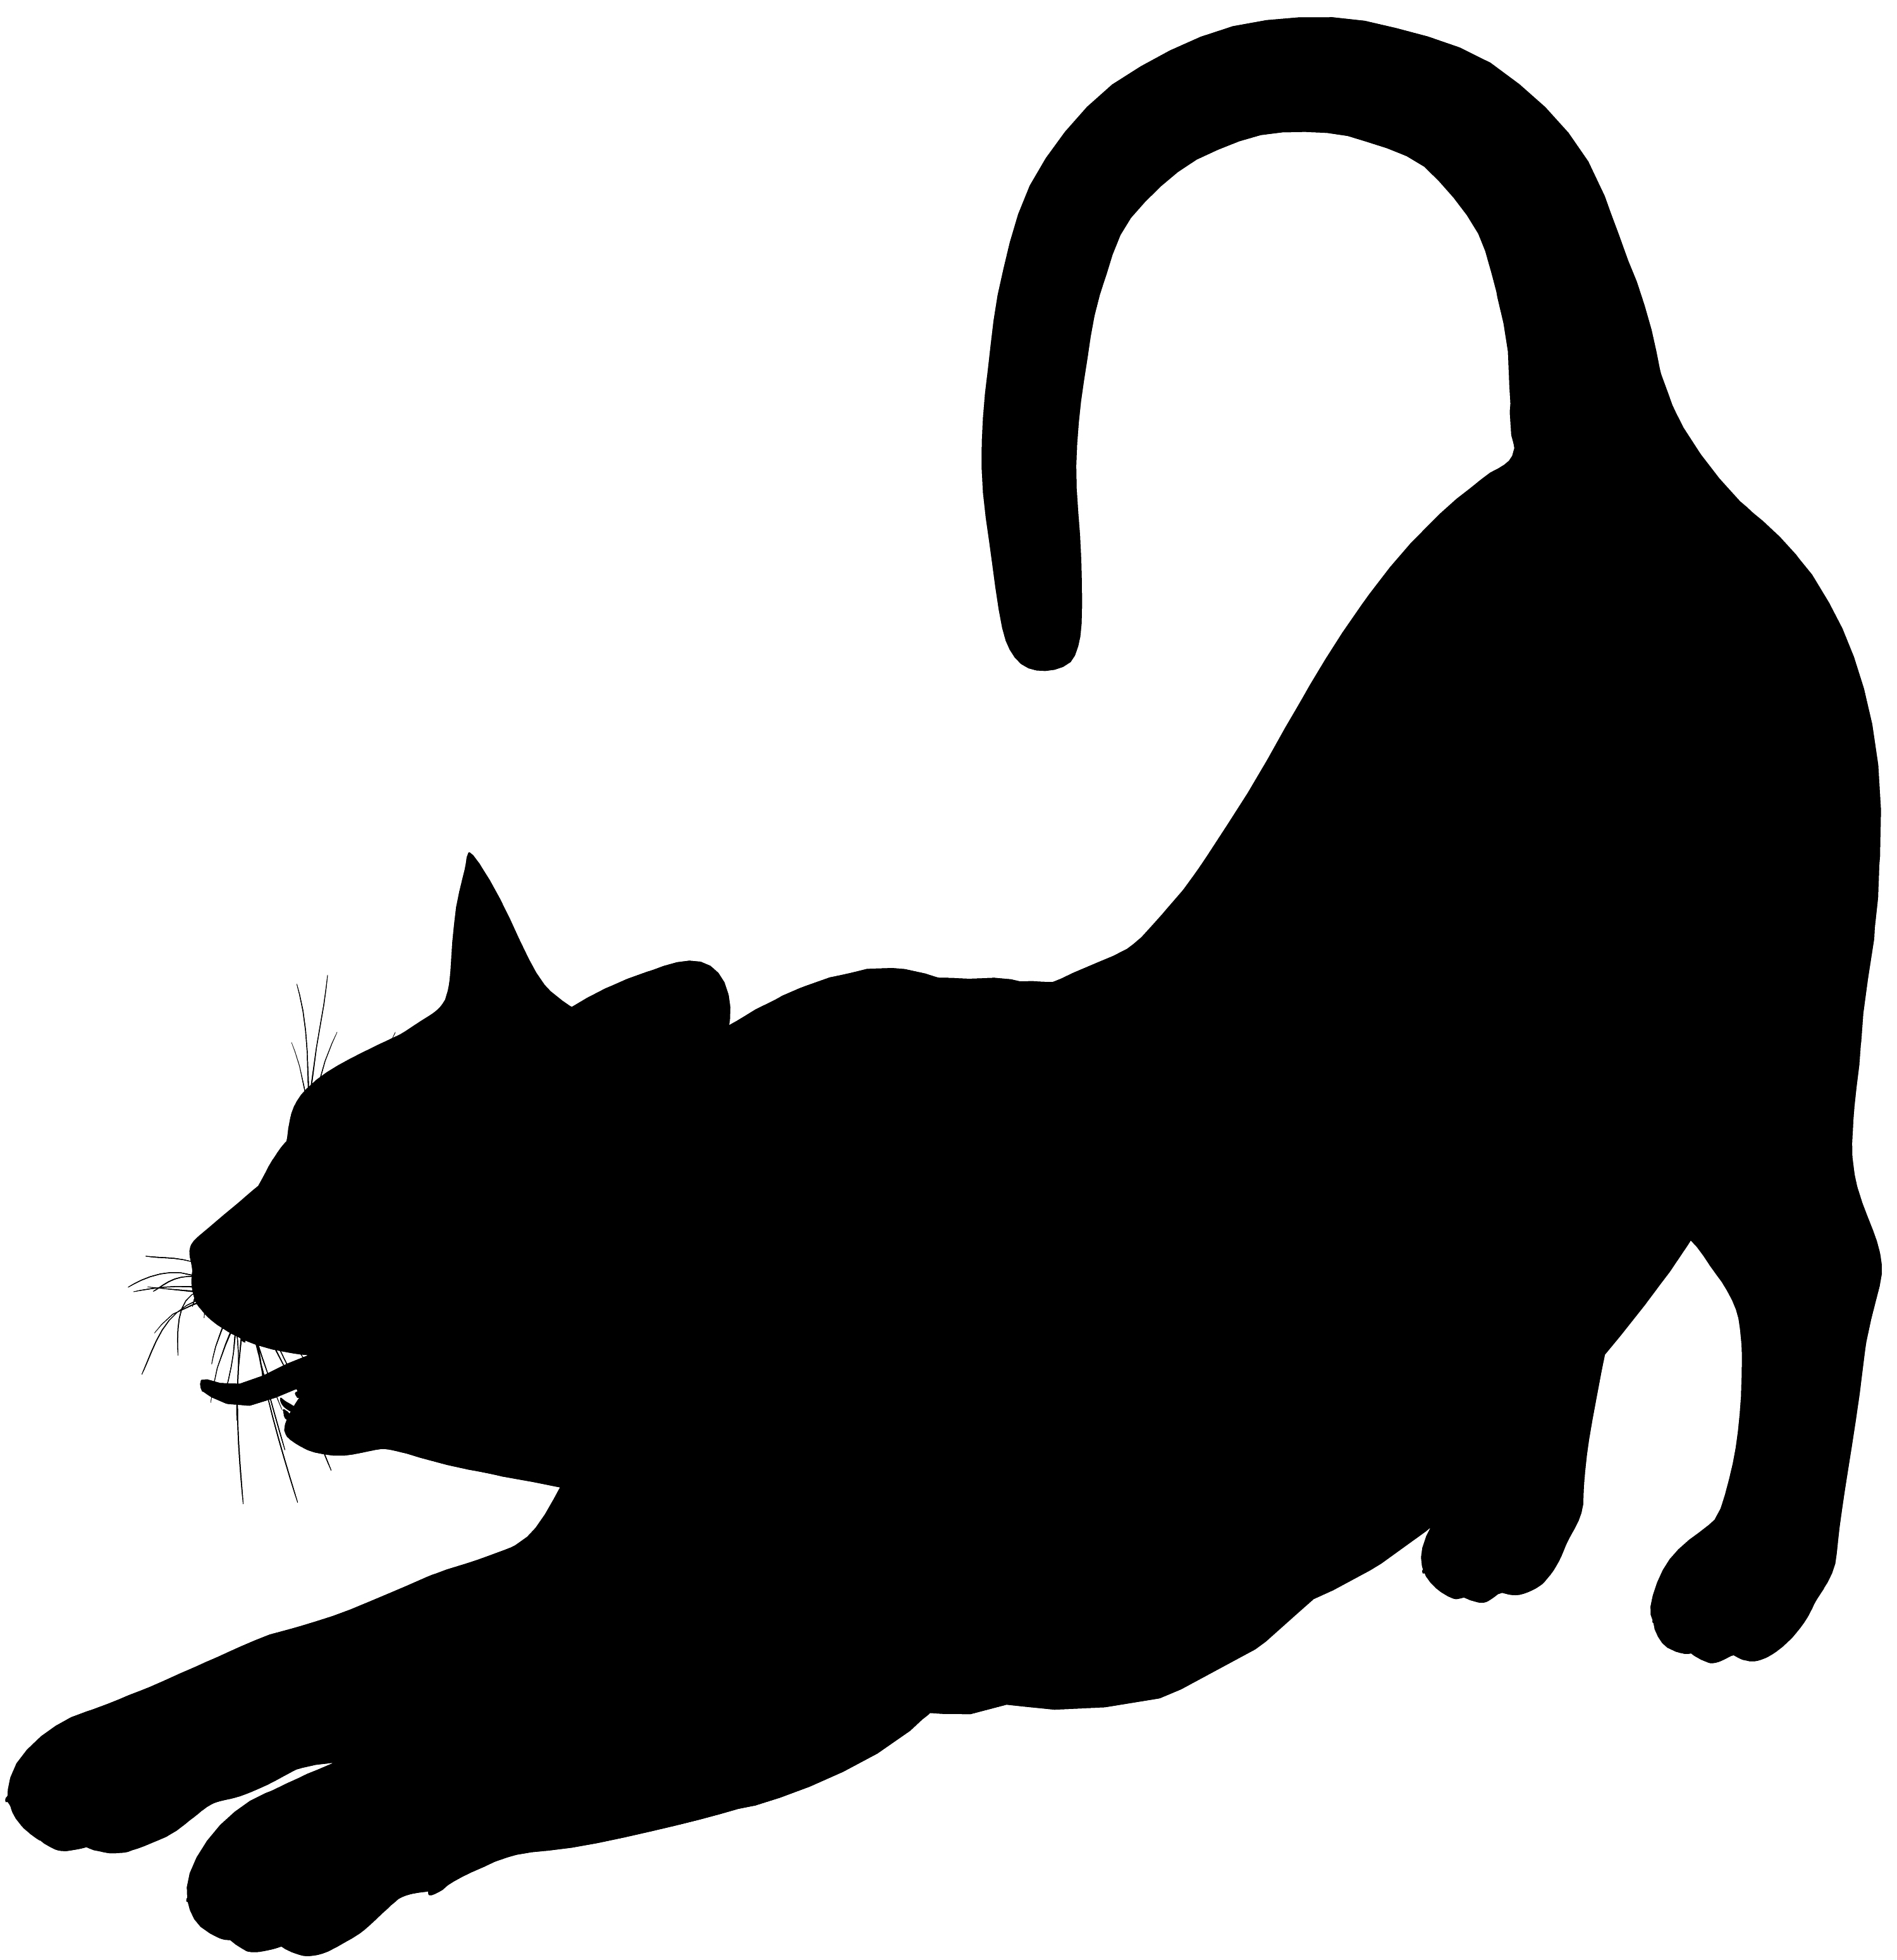 Scary clipart halloween pencil. Cat clip art spooky black clip art freeuse library